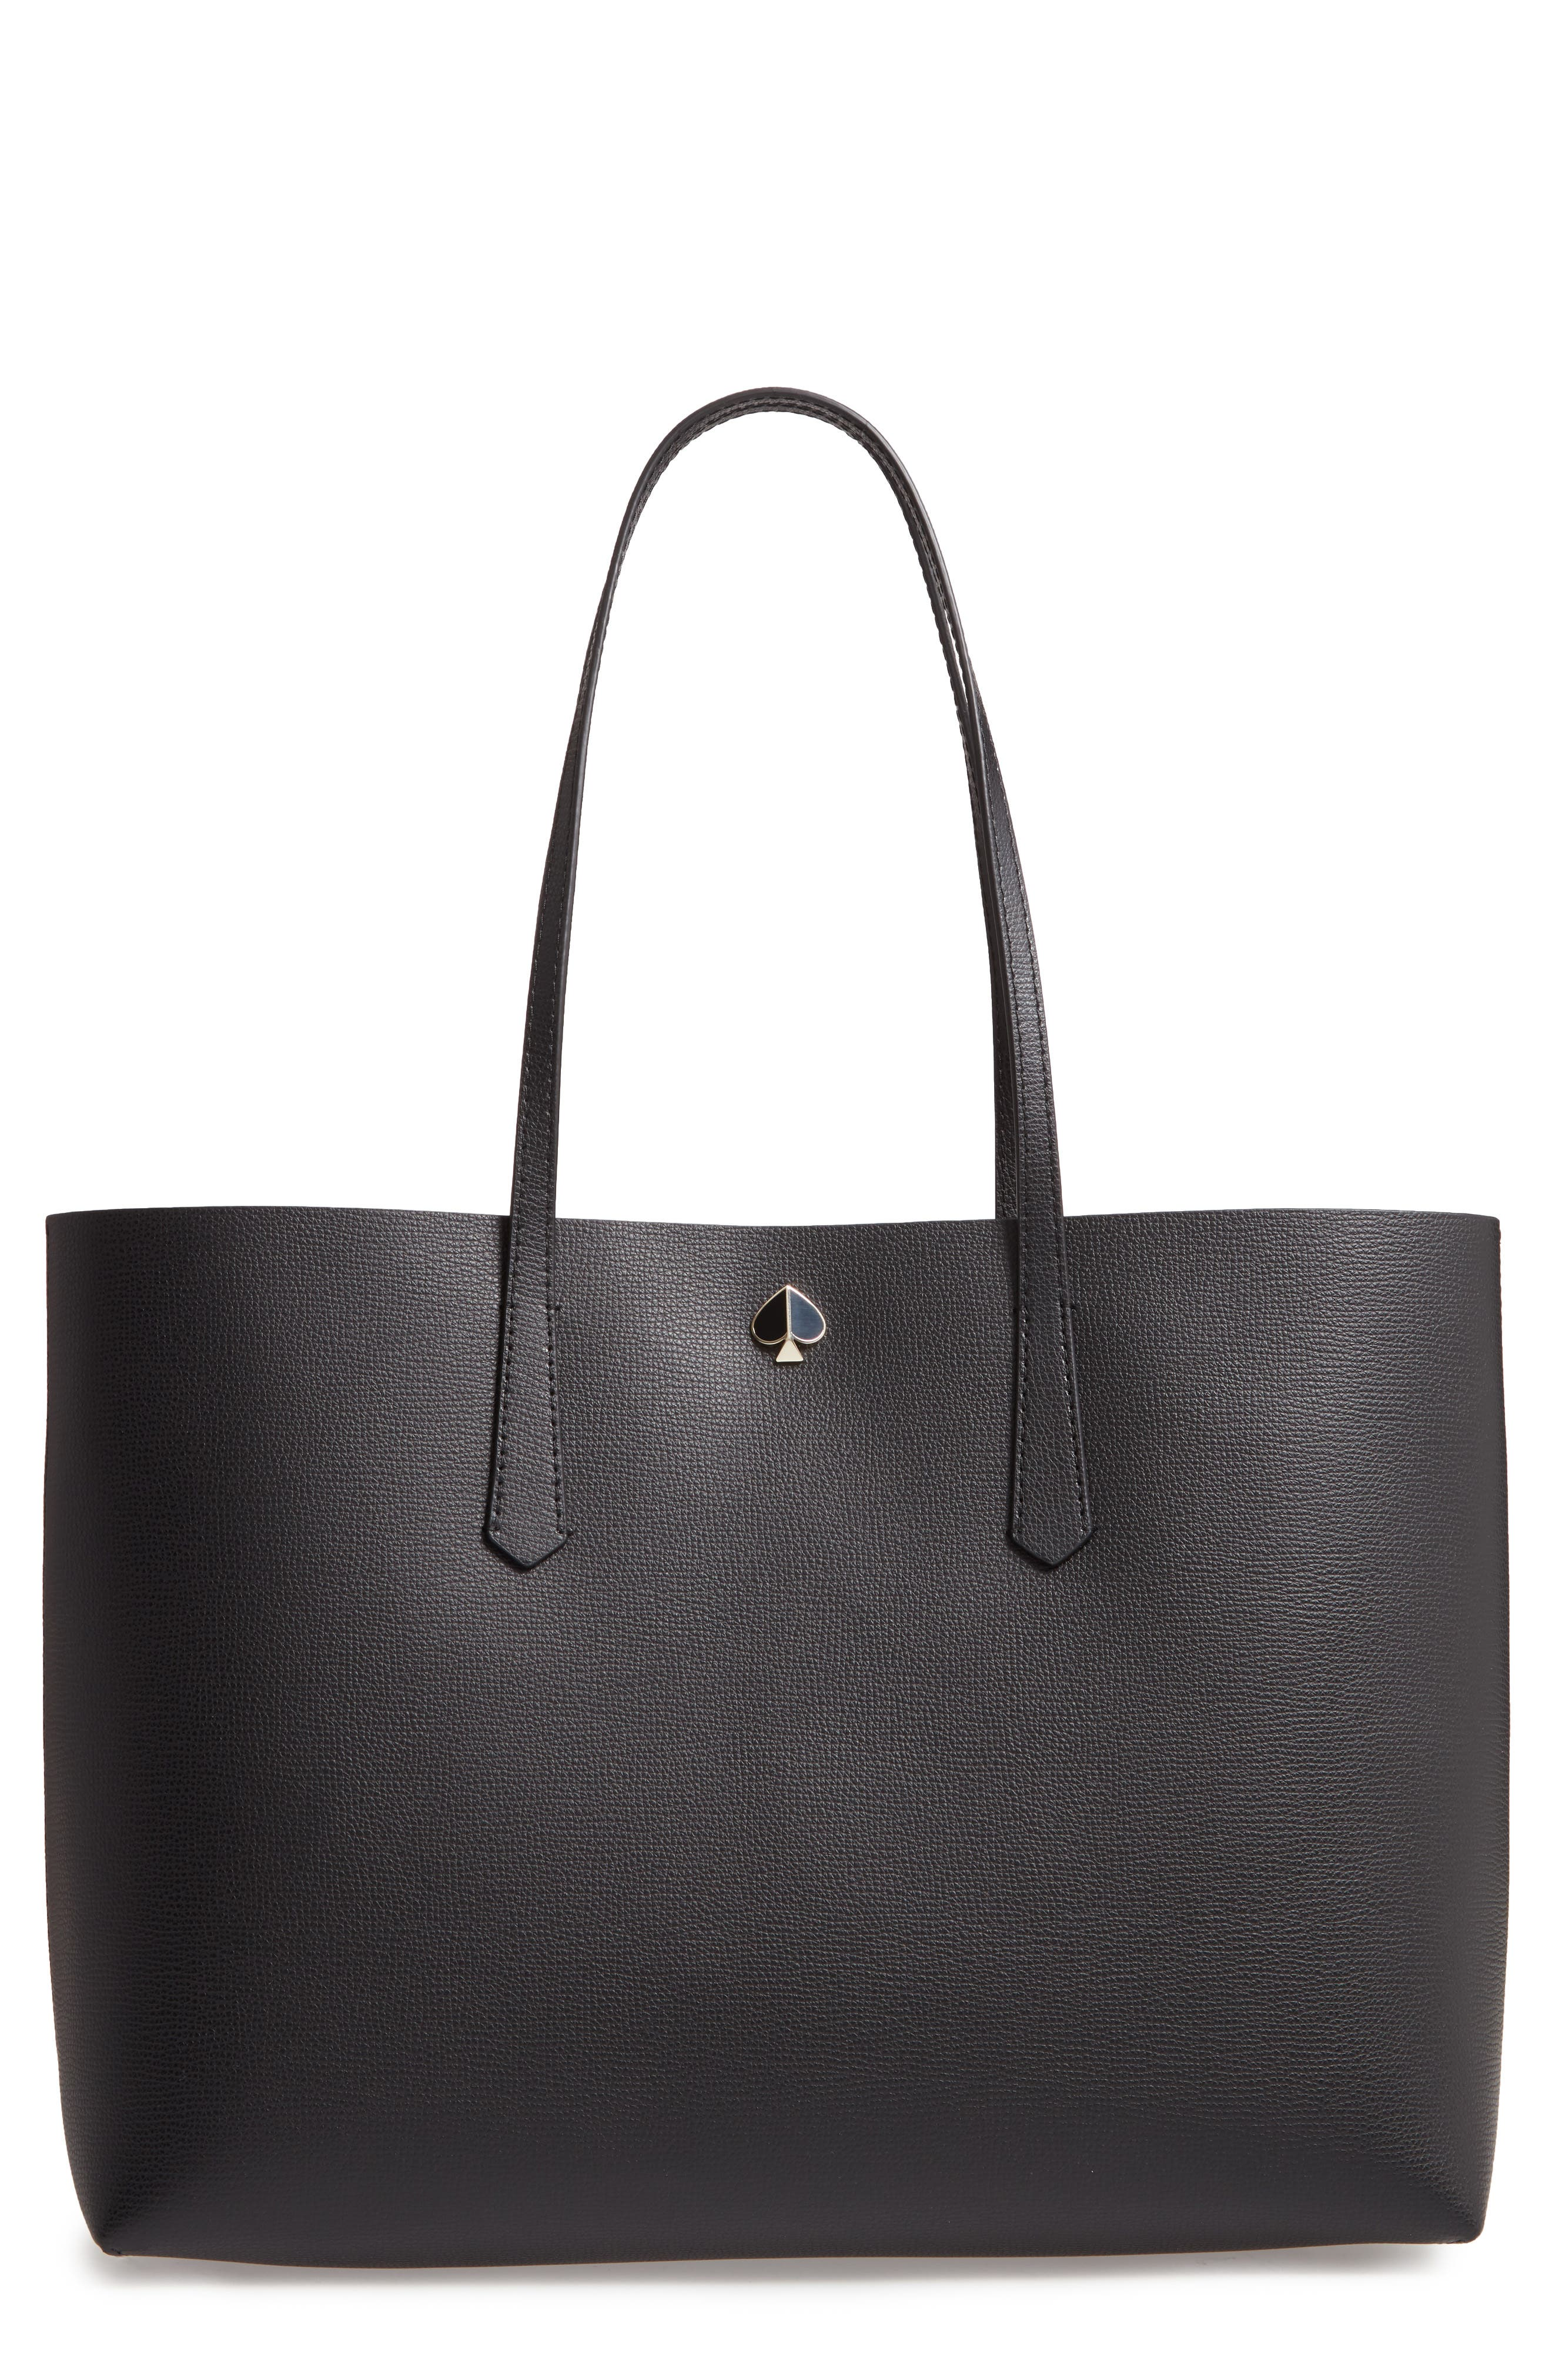 KATE SPADE NEW YORK, large molly leather tote, Main thumbnail 1, color, BLACK